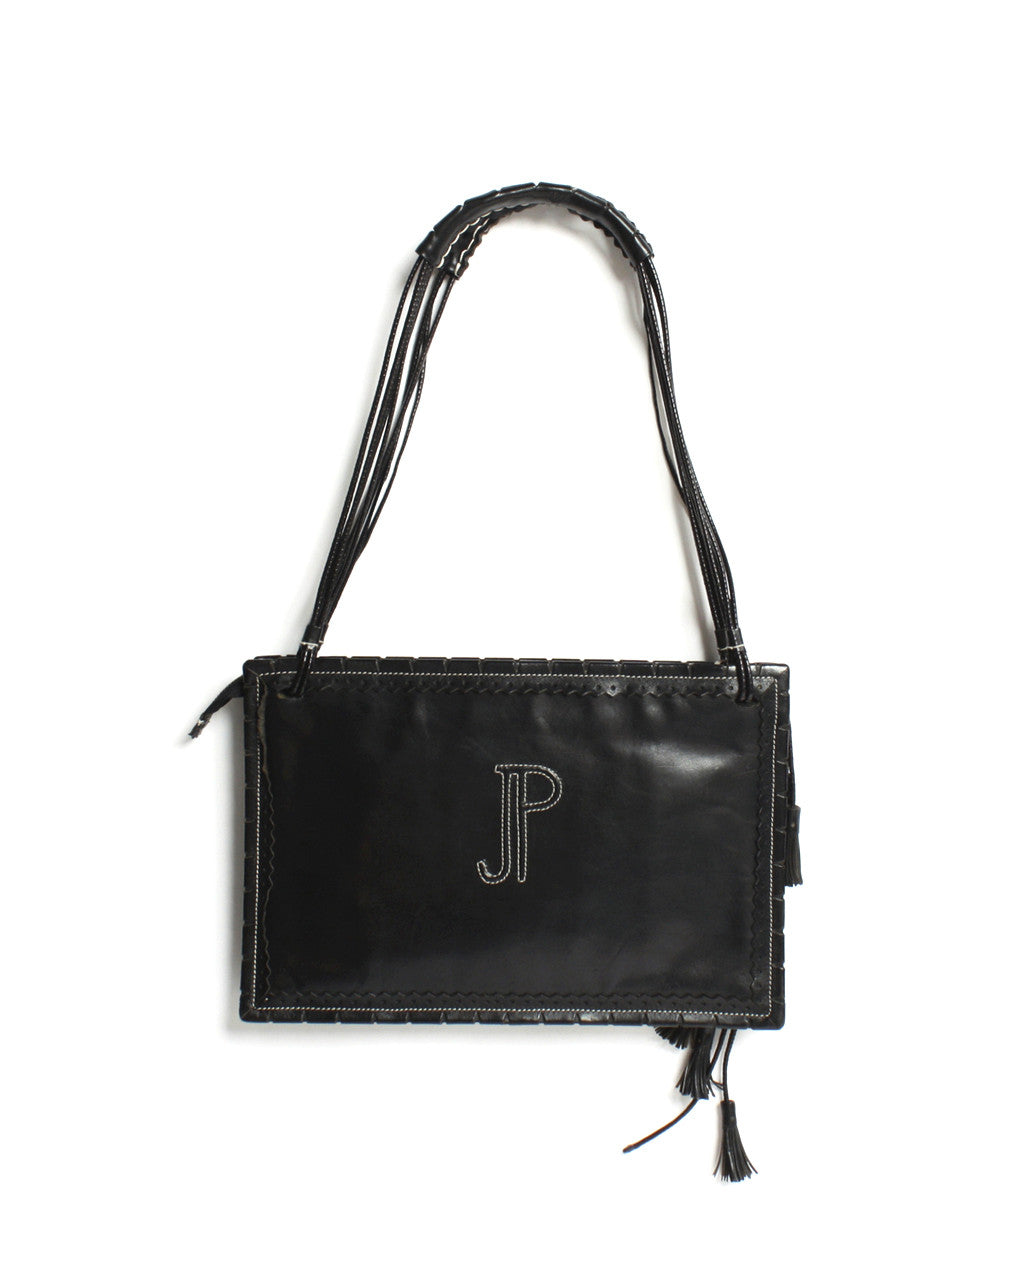 Jean Paul Gaultier Black Leather Shoulder Bag With Zig-Zag Stitching